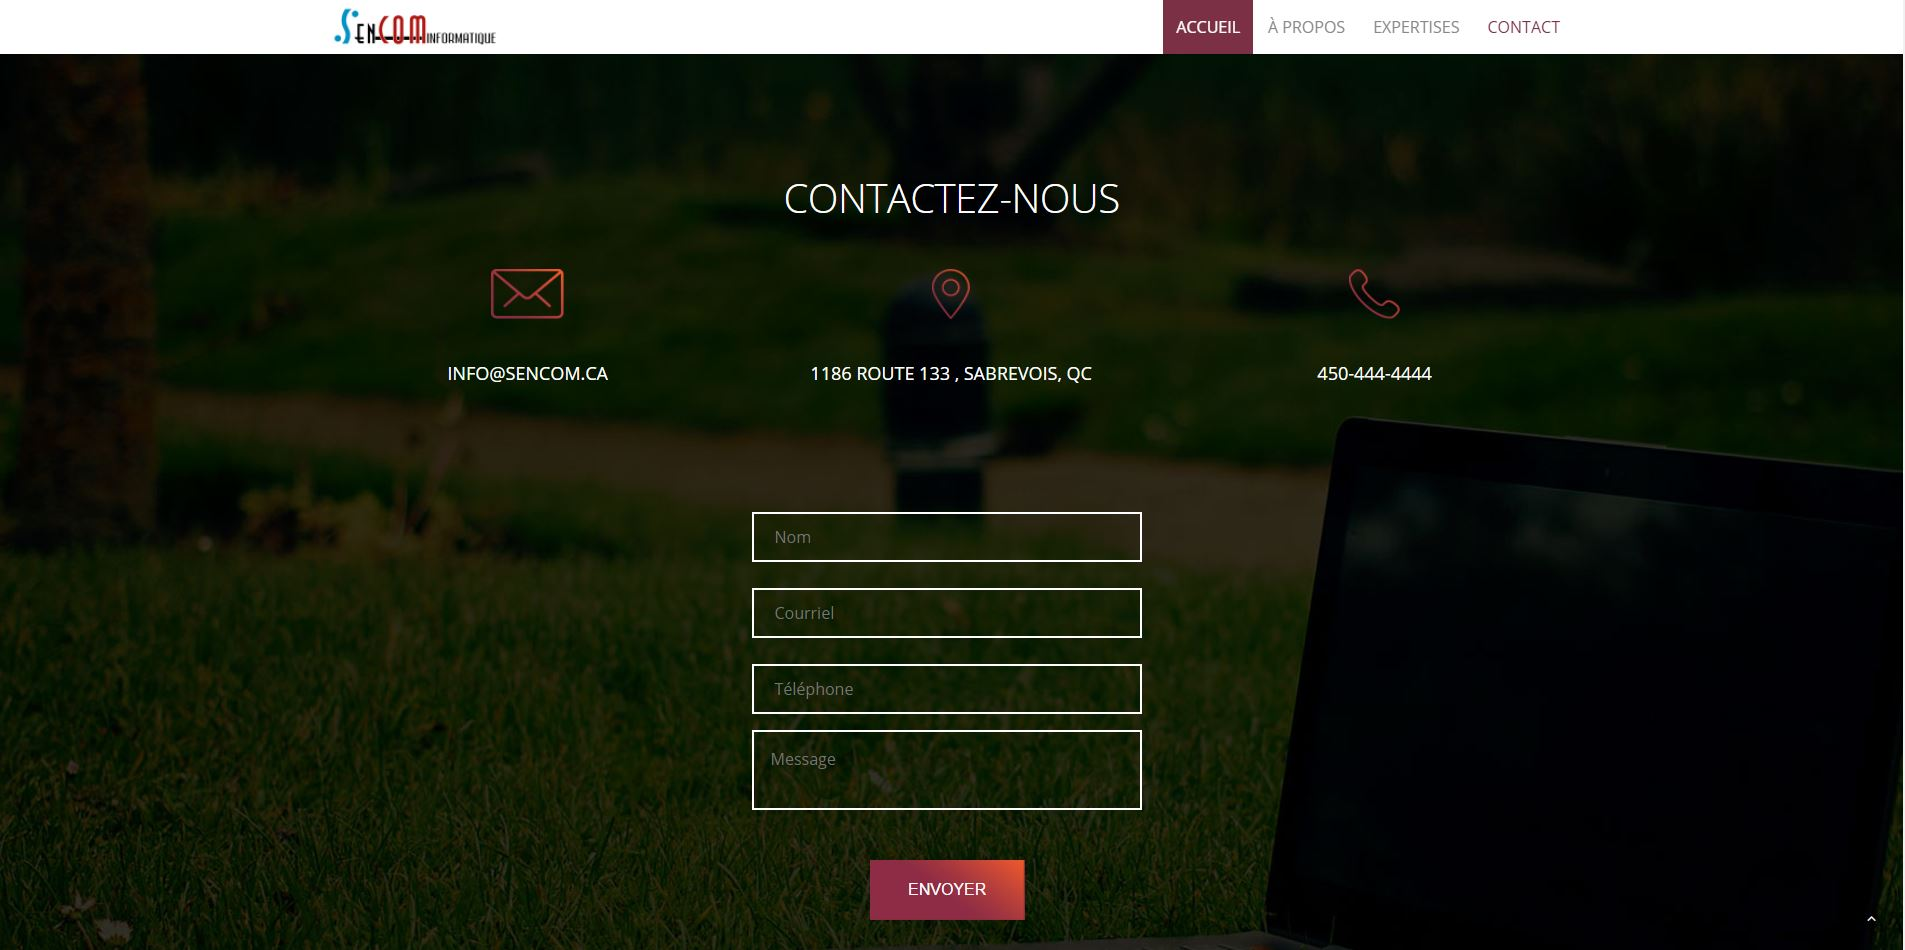 Agence web - Marketing digital - création site web - Protai-in - sencom